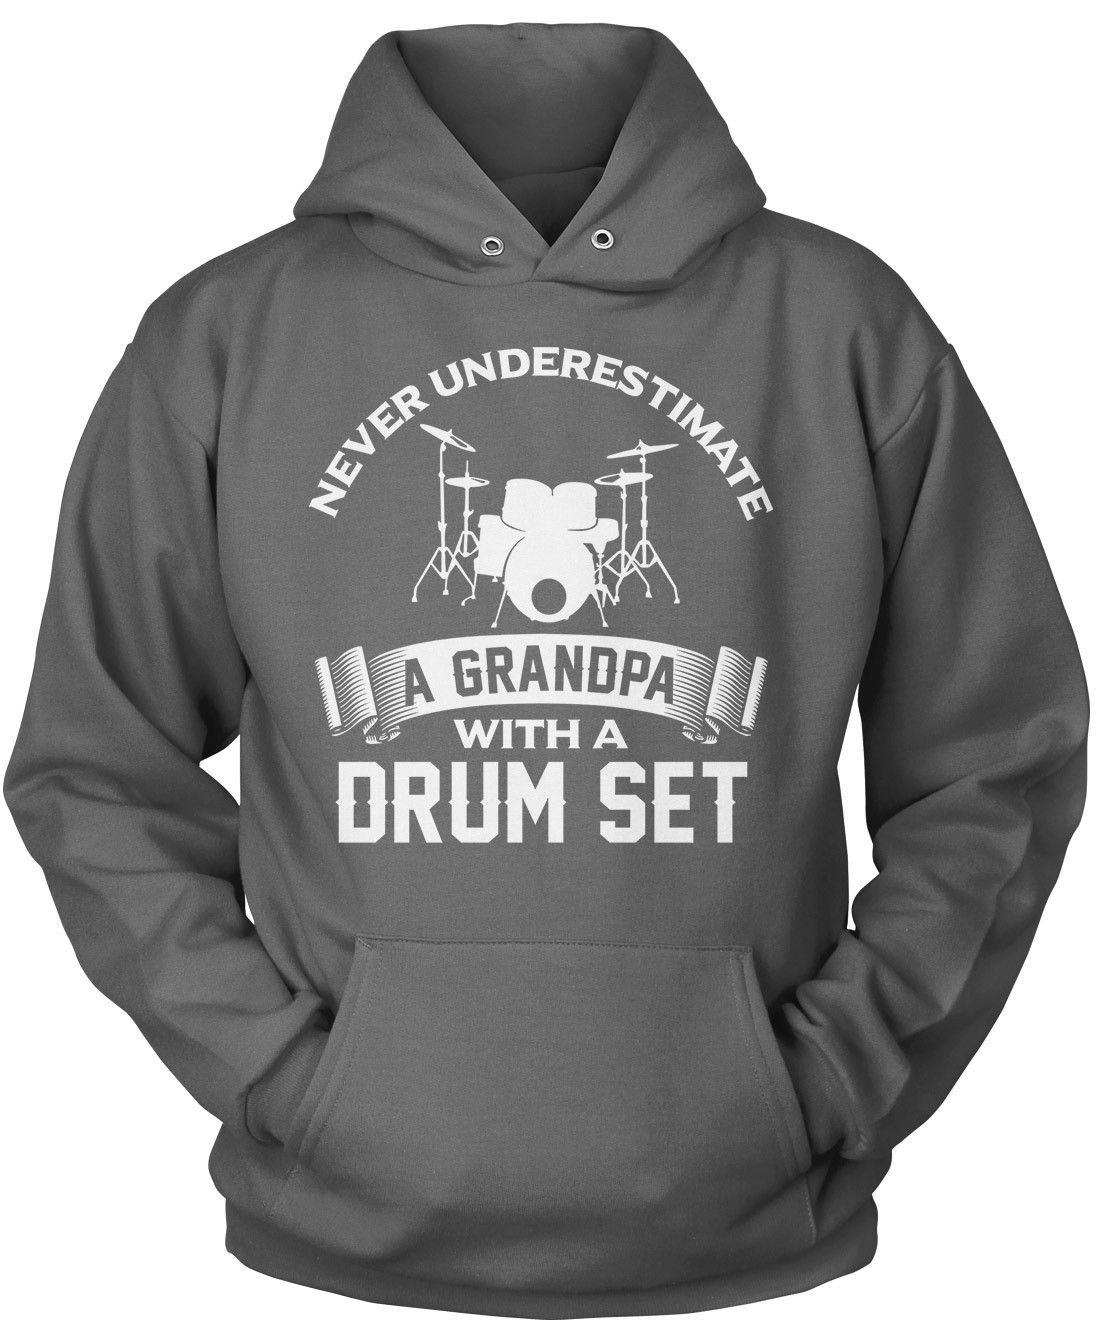 Never Underestimate a Grandpa with a Drum Set